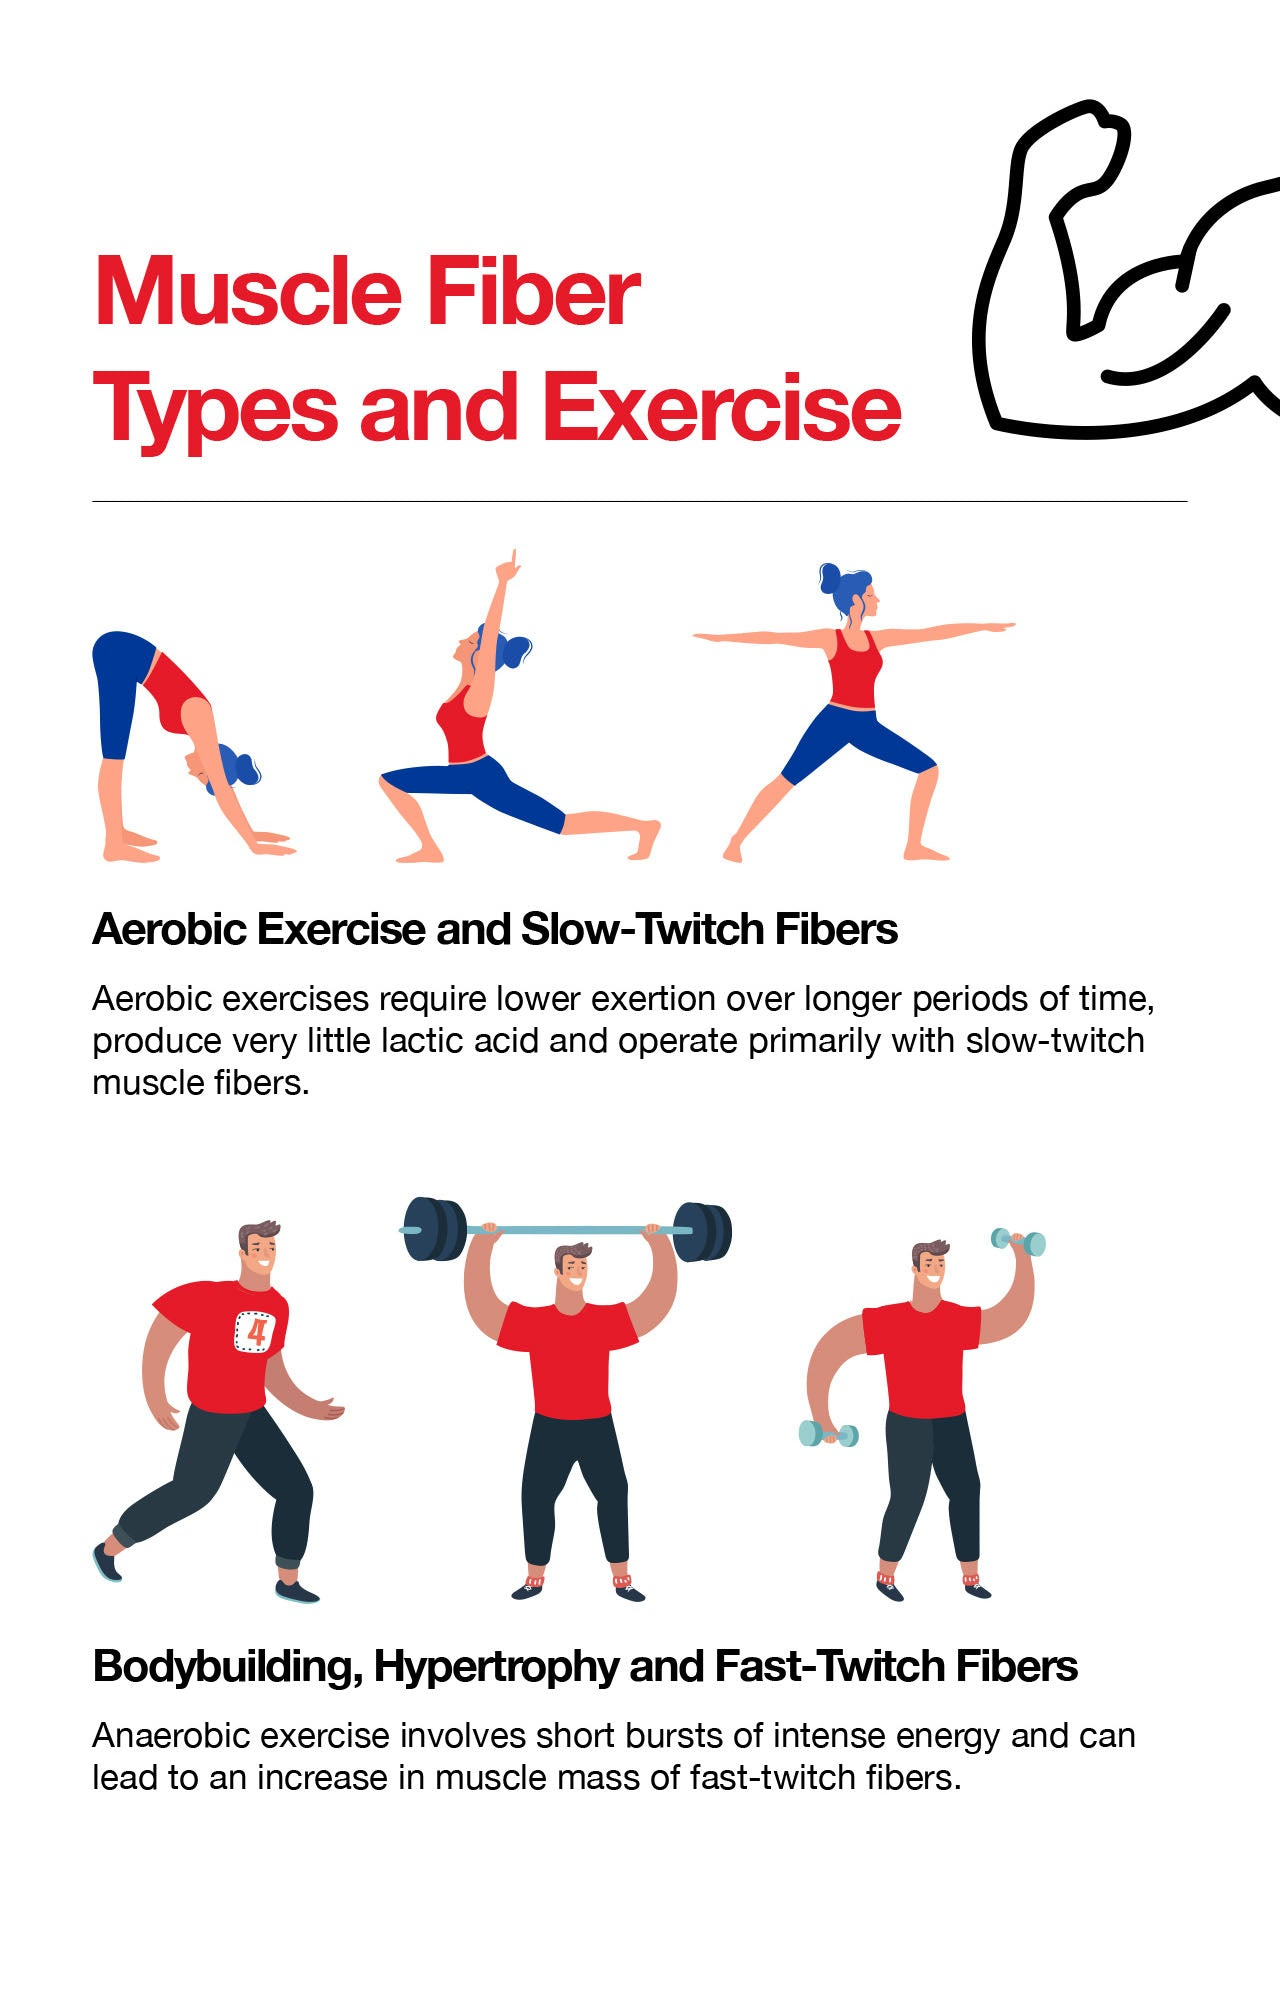 Muscle Fiber Types and Exercise